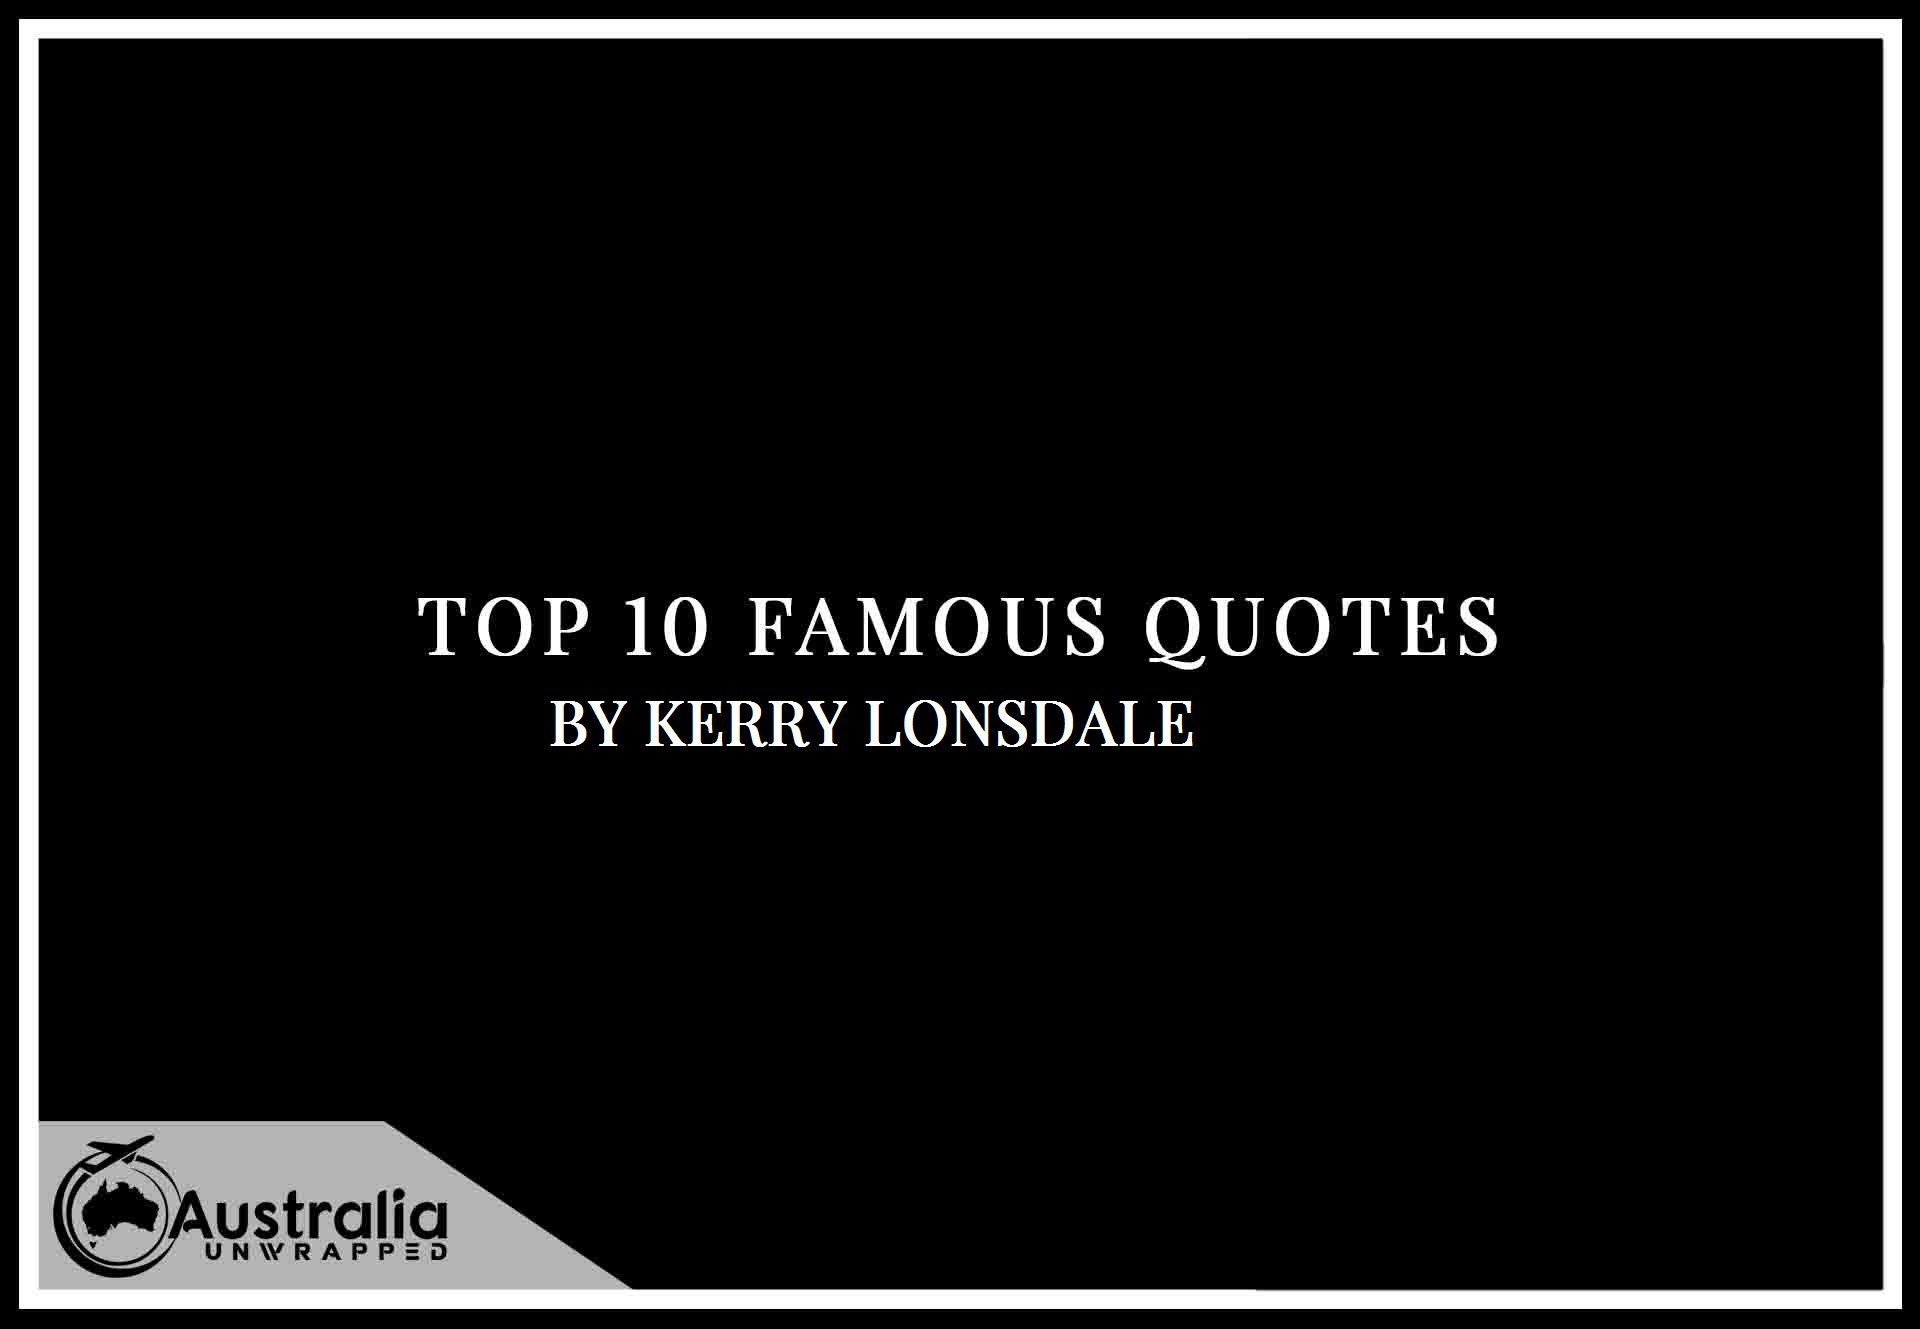 Kerry Lonsdale's Top 10 Popular and Famous Quotes